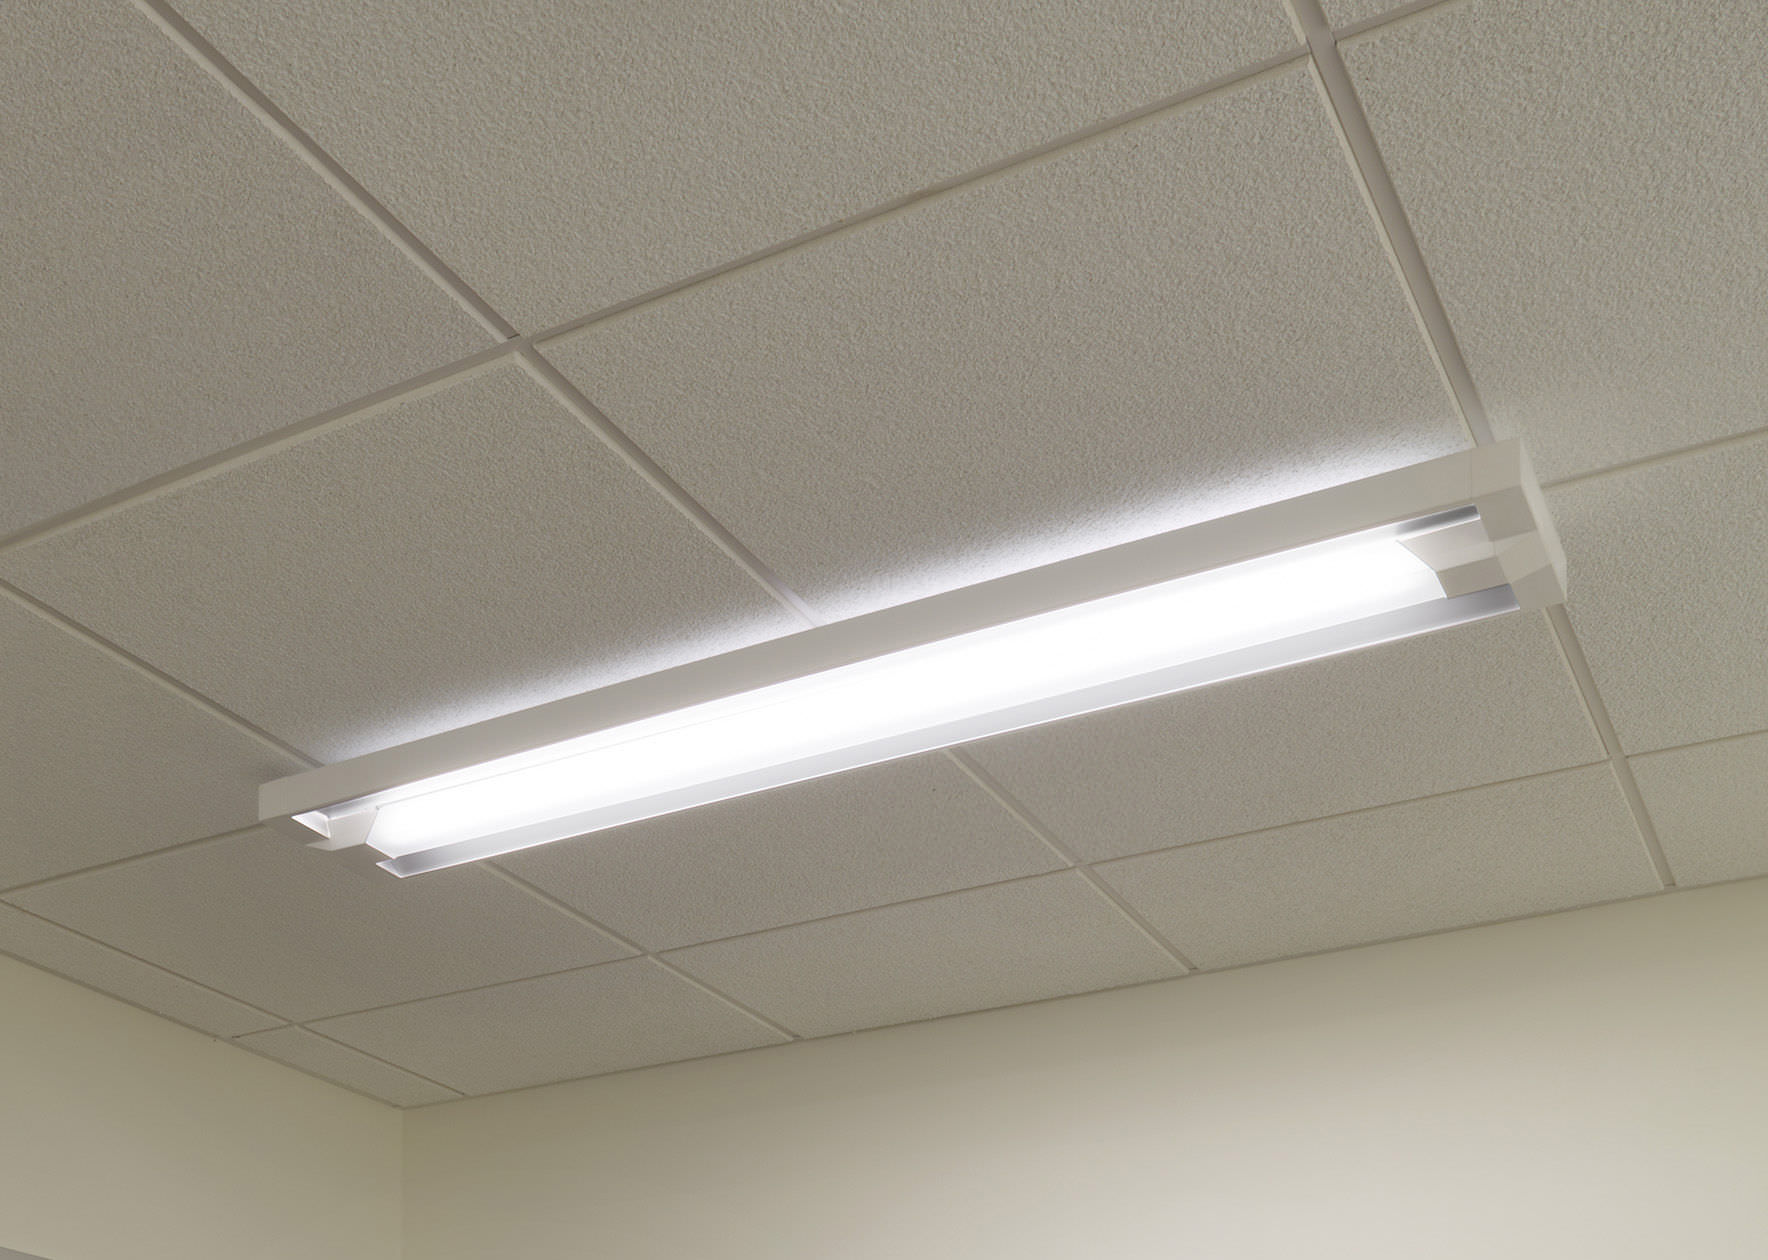 Recessed Ceiling Light Fixture Surface Mounted